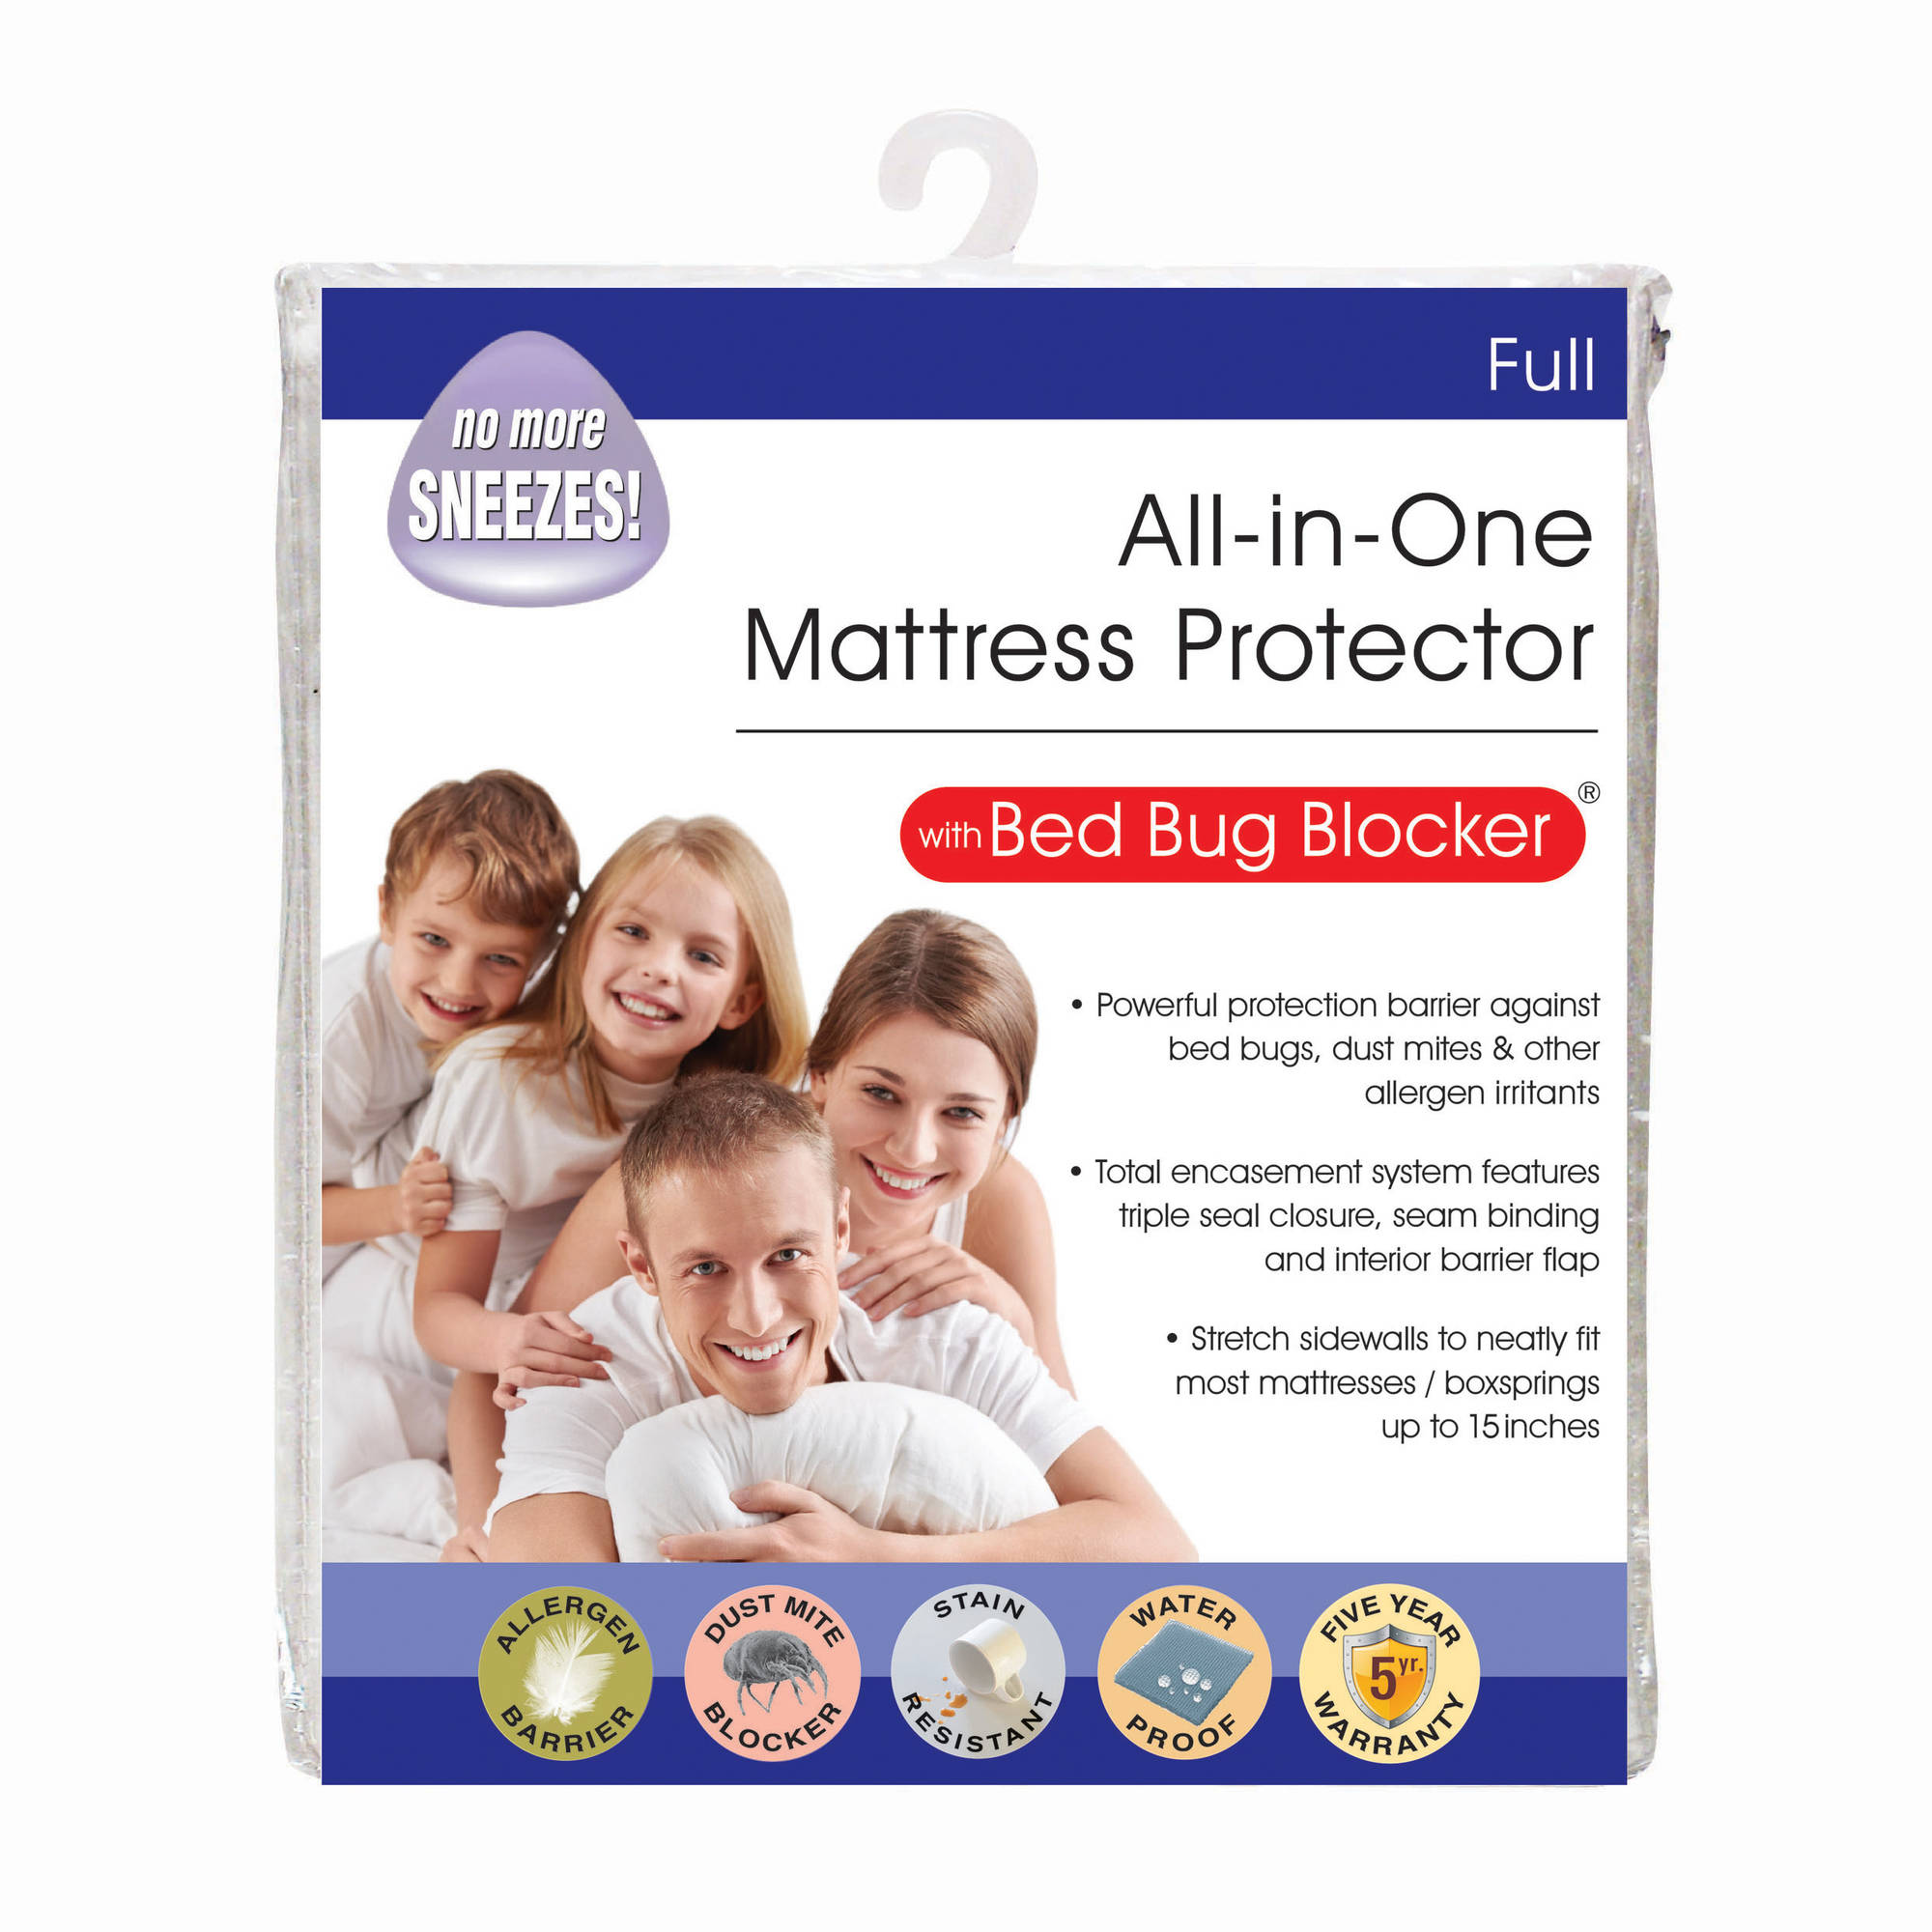 walmart ultimate bugs covers tested lab guardian box bed bug proof cover percent me abrarkhan for mattress